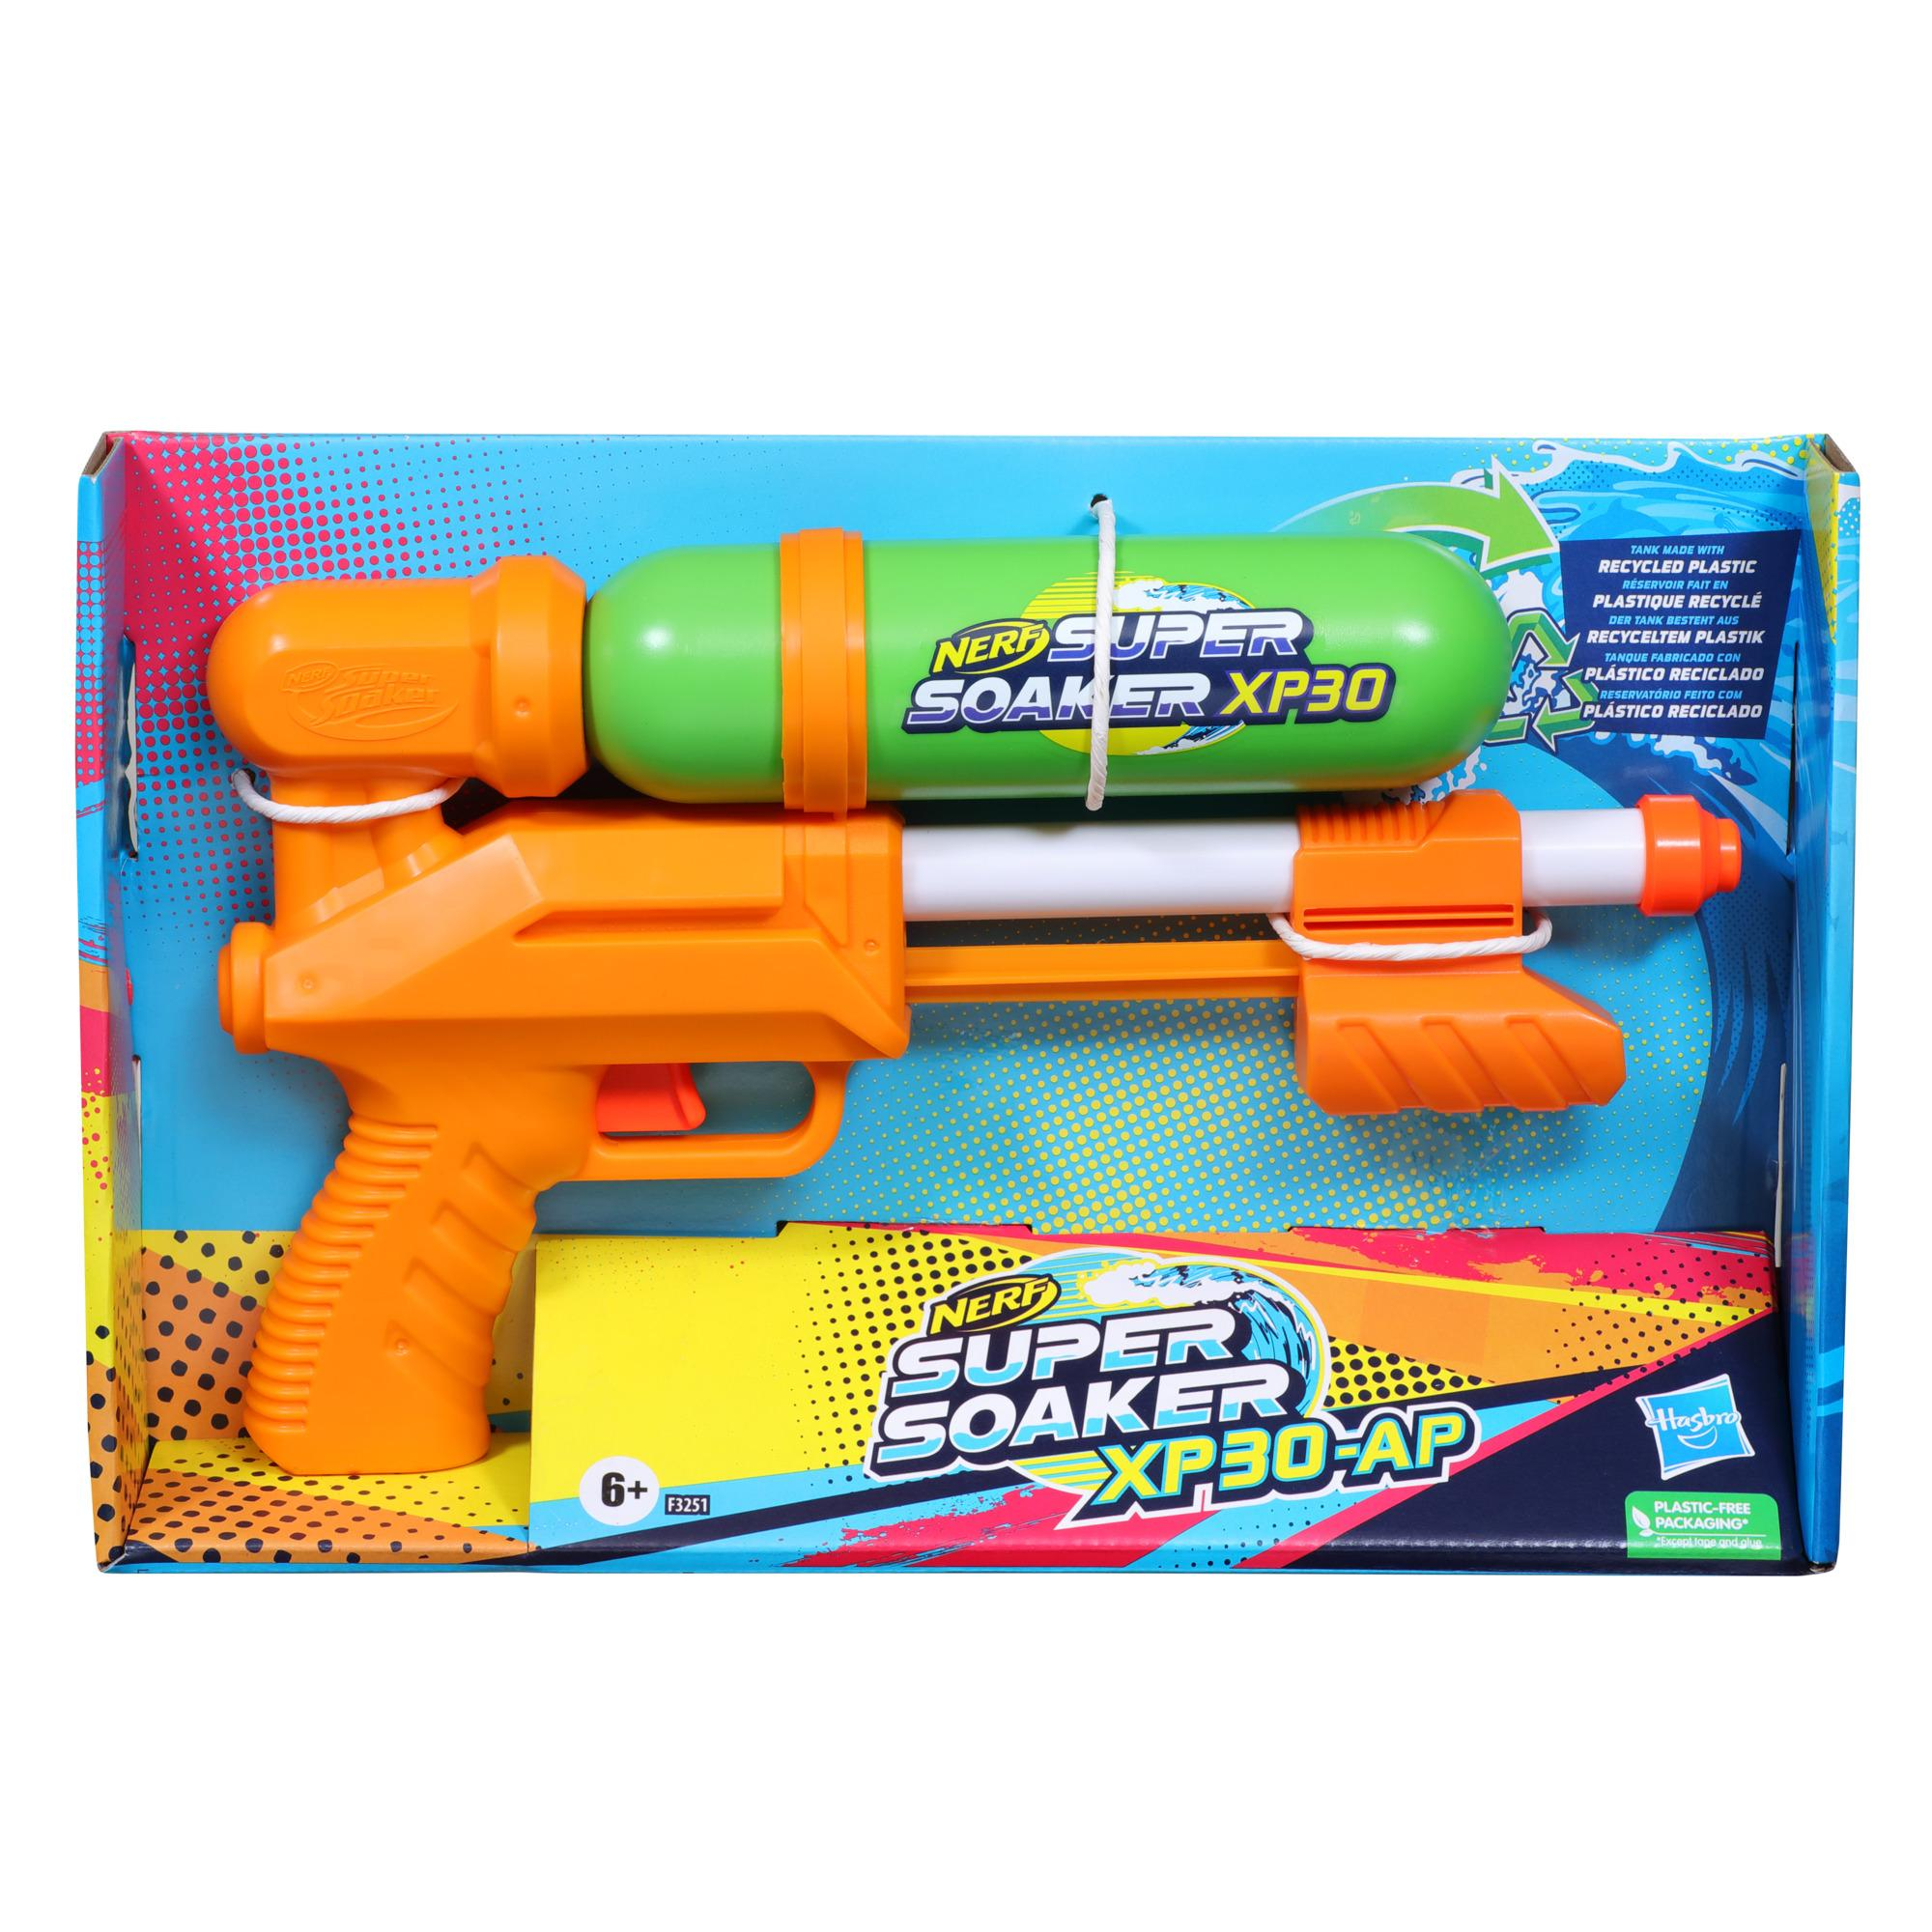 Nerf Super Soaker XP30-AP Water Blaster, Tank Made With Recycled Plastic, Air-Pressurized Continuous Water Blast